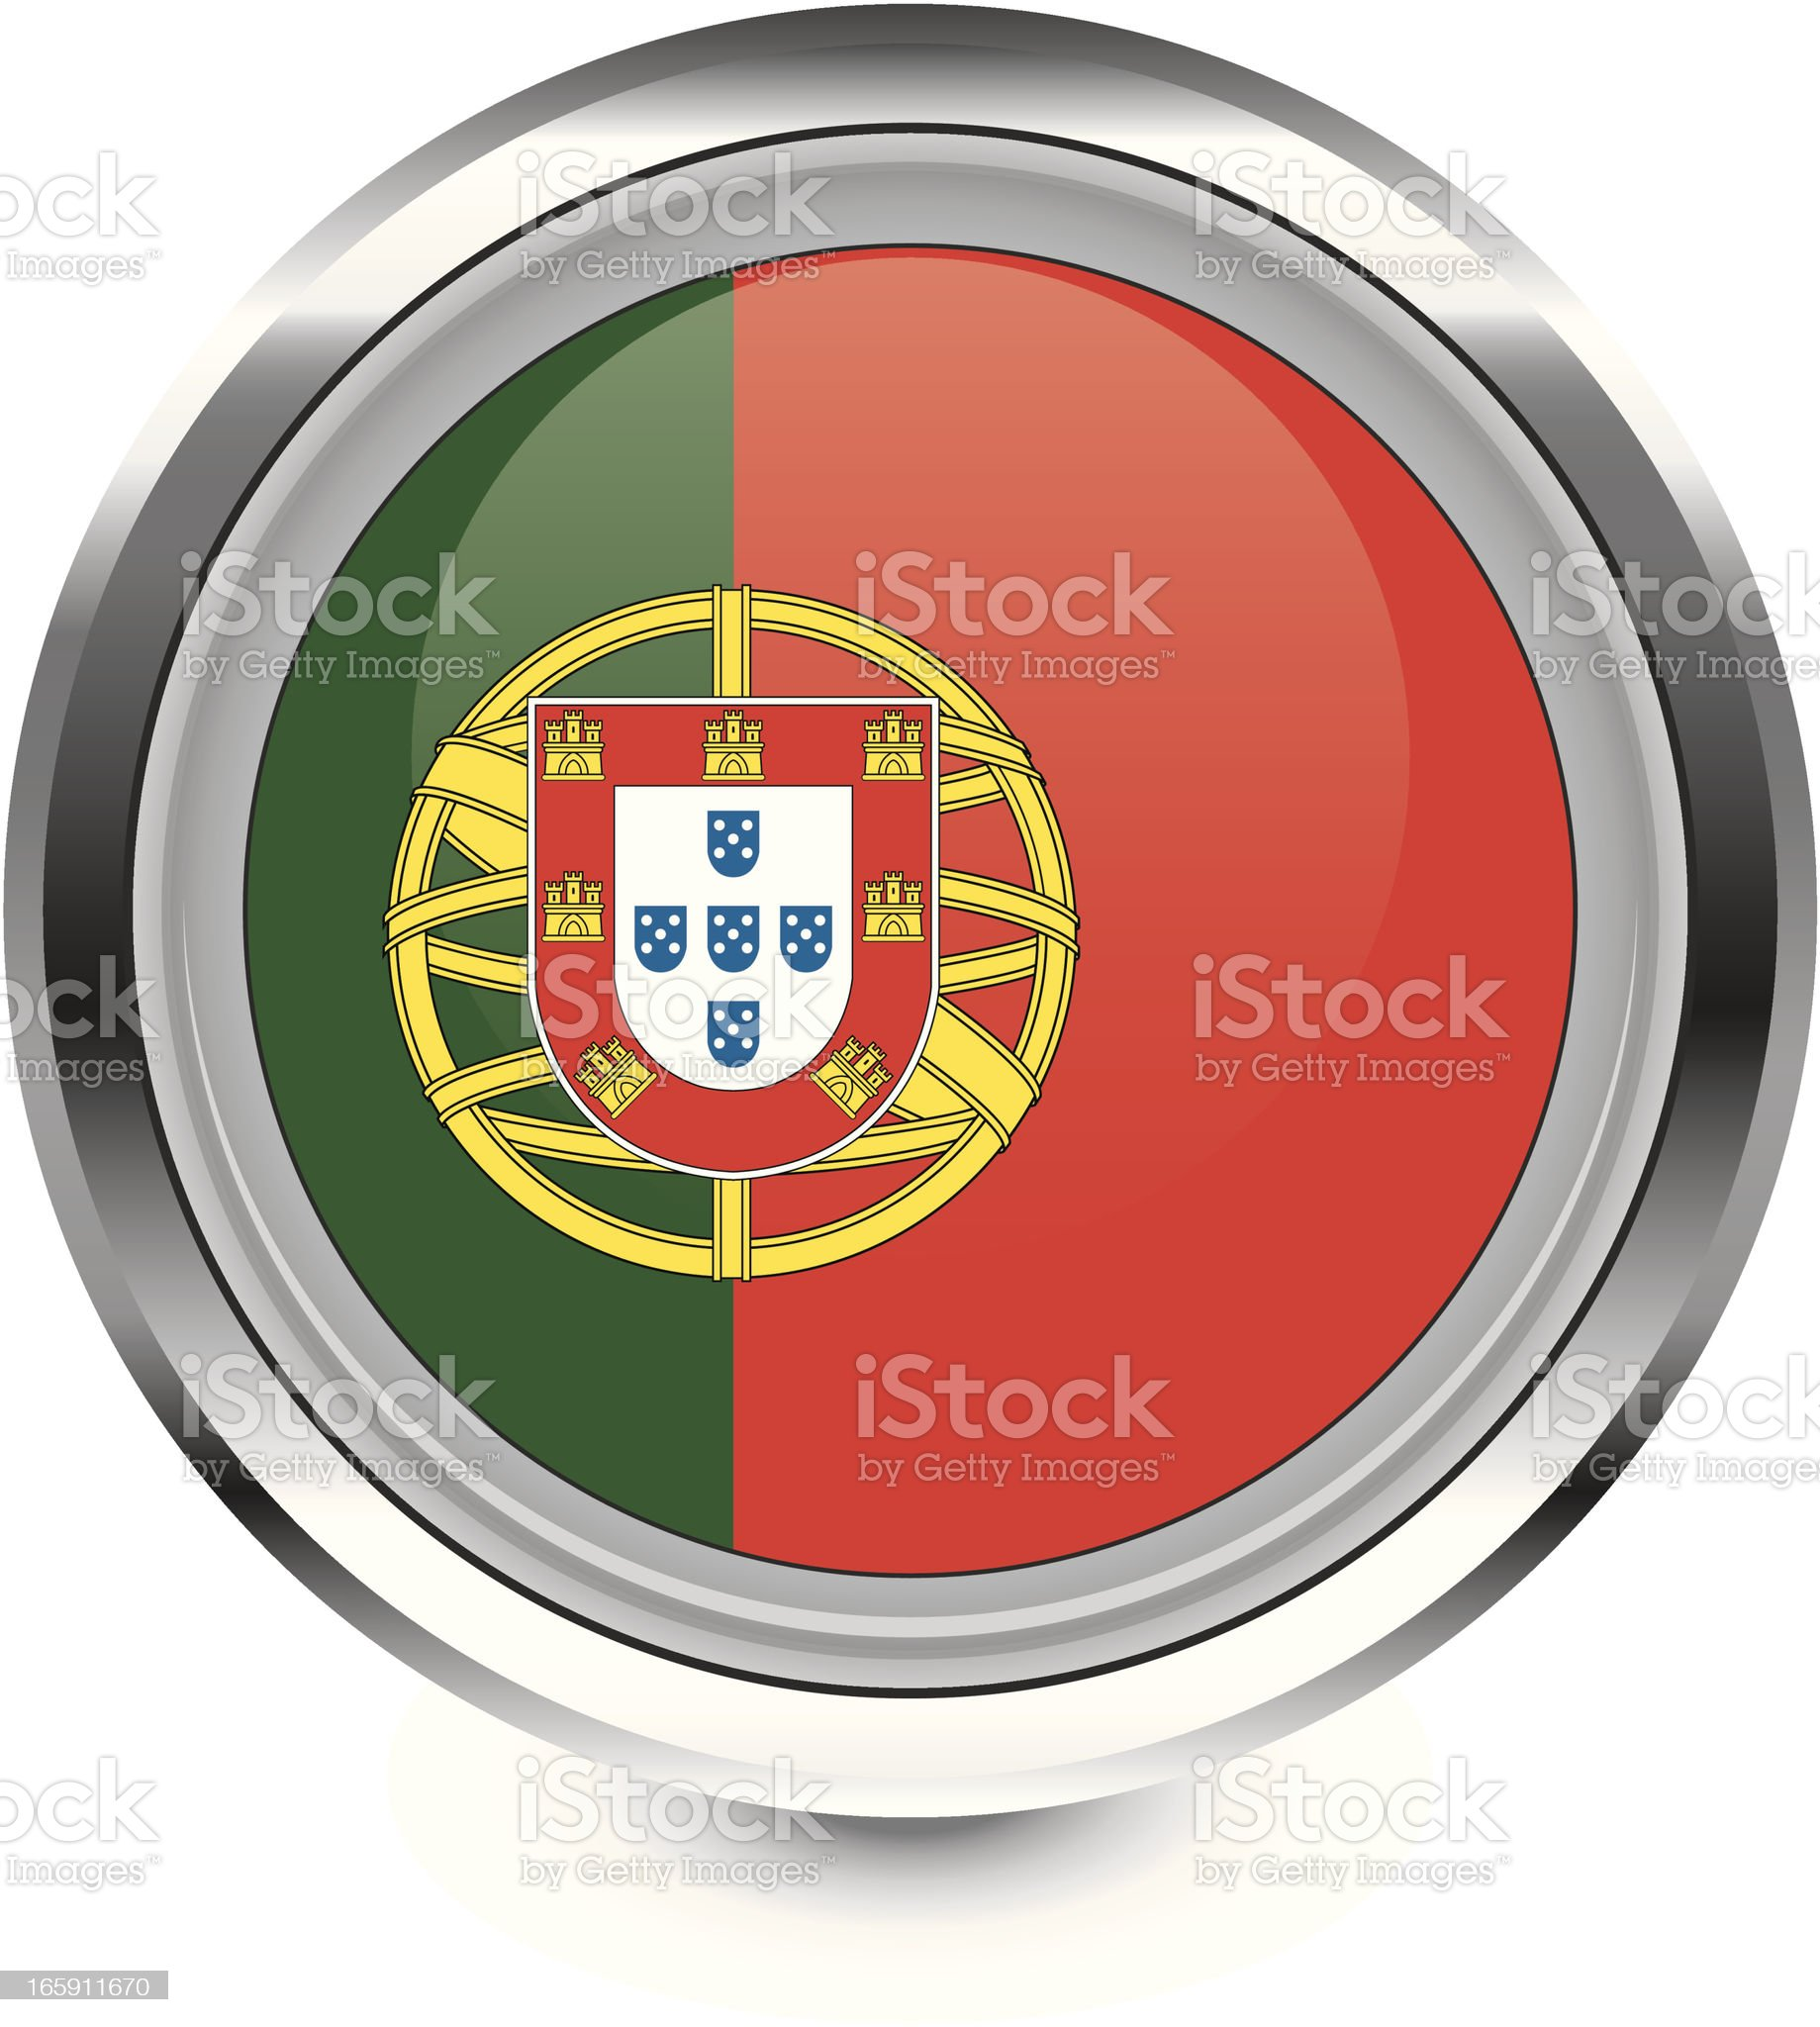 Portugal flag icon royalty-free stock vector art